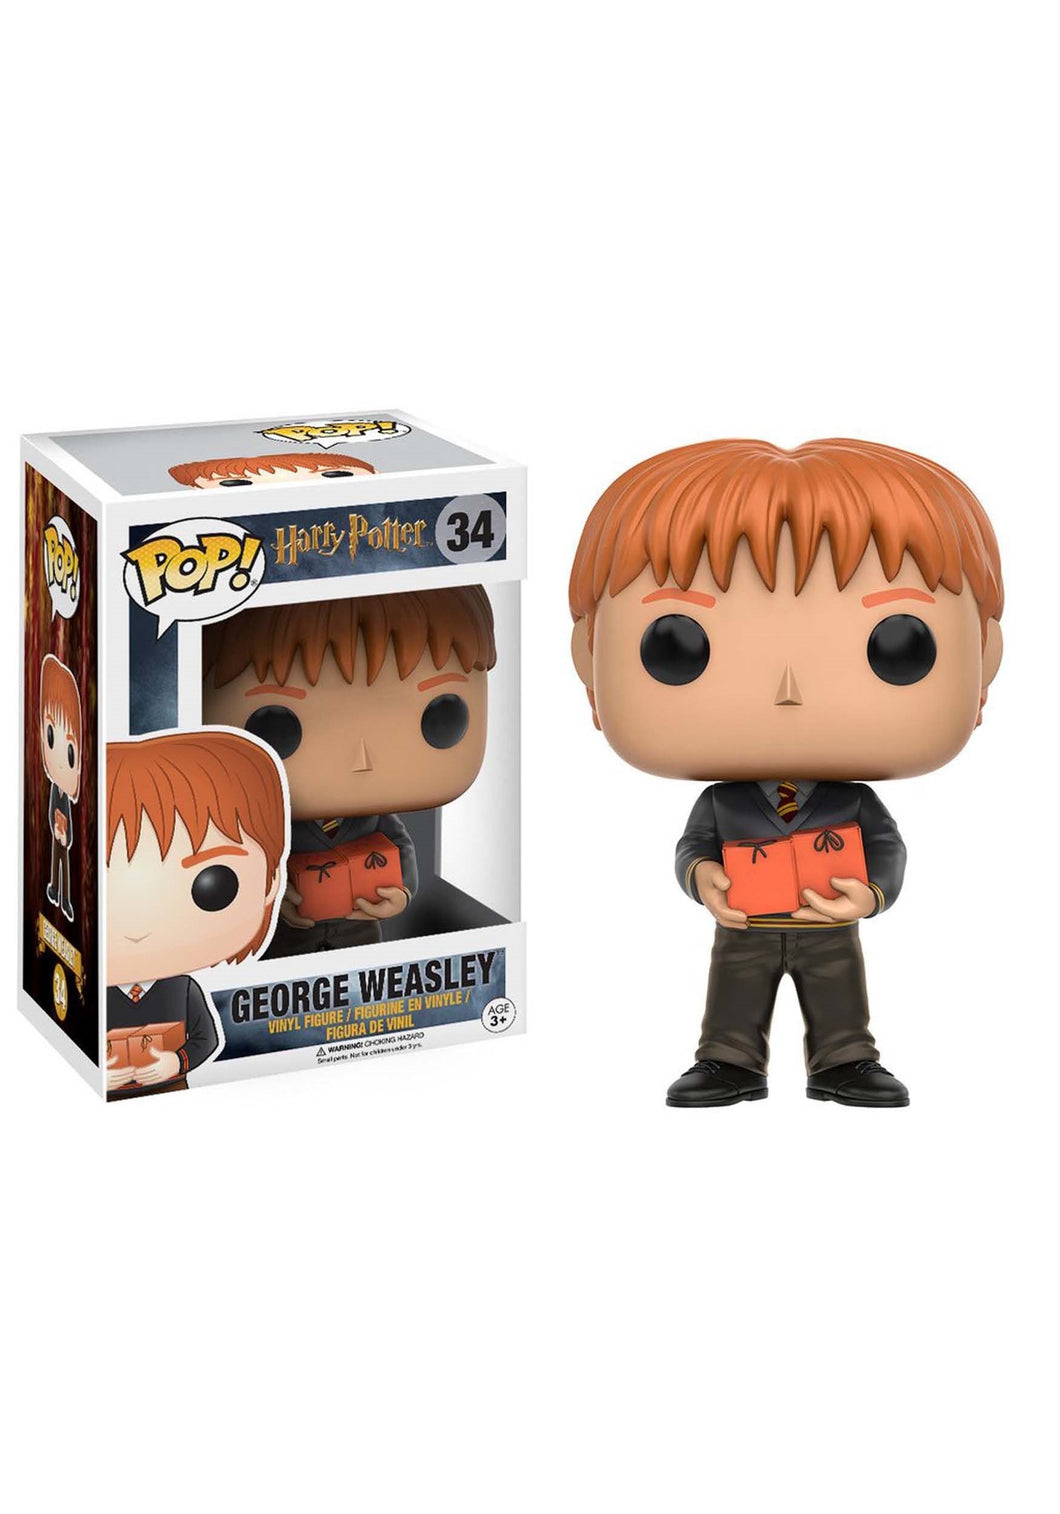 HARRY POTTER GEORGE WEASLEY FUNKO POP! VINYL FIGURE #34